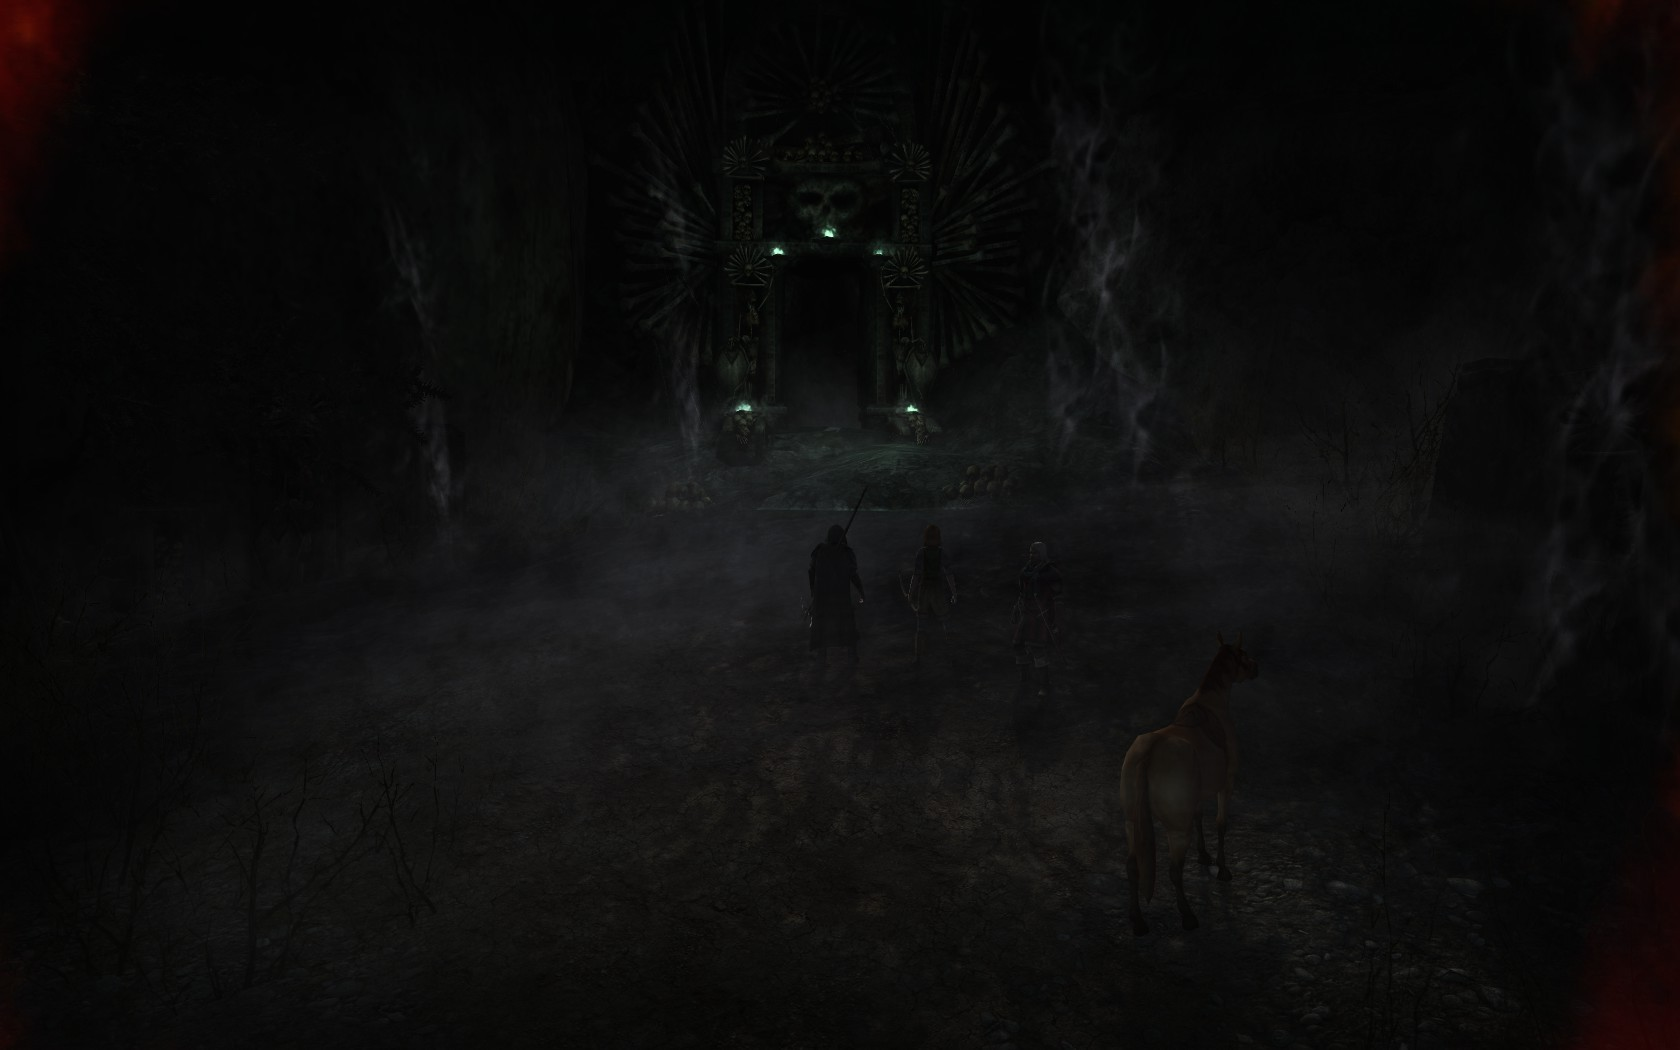 Lord of the Rings Online - The Dark Door of Dimholt where the Dead walks